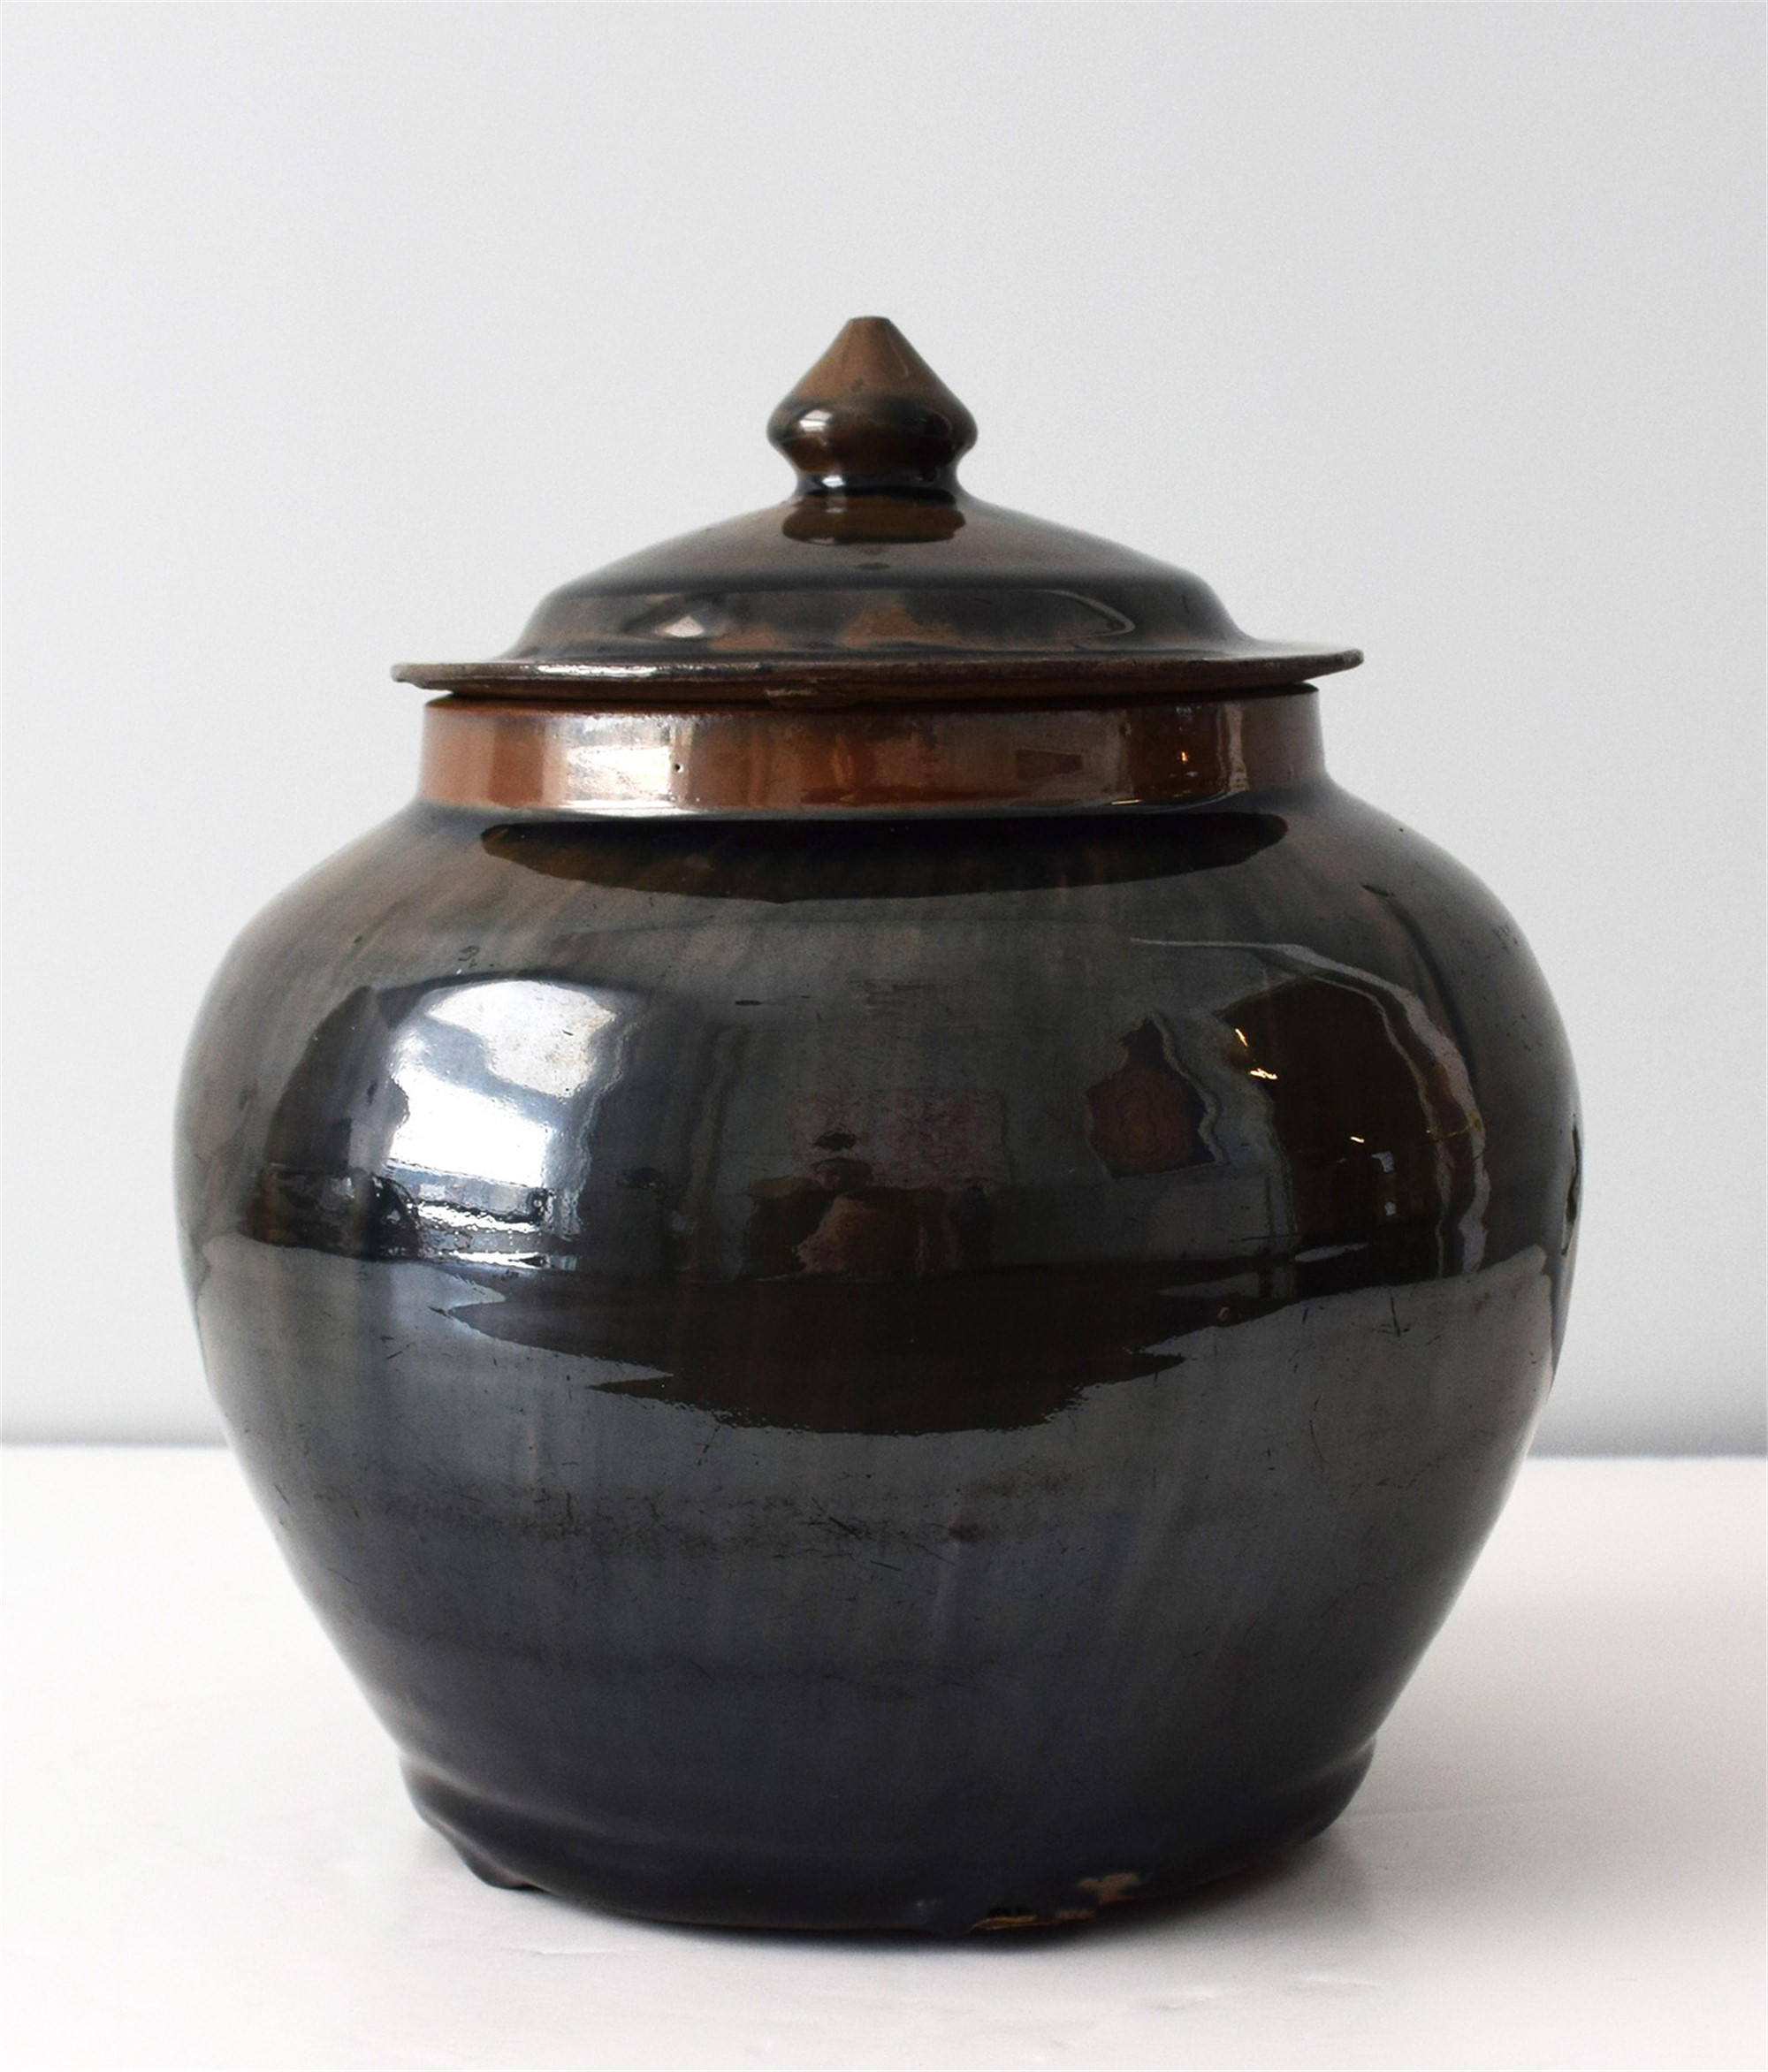 BLACK GLAZED JAR AND COVER WITH RUSSET STREAKS